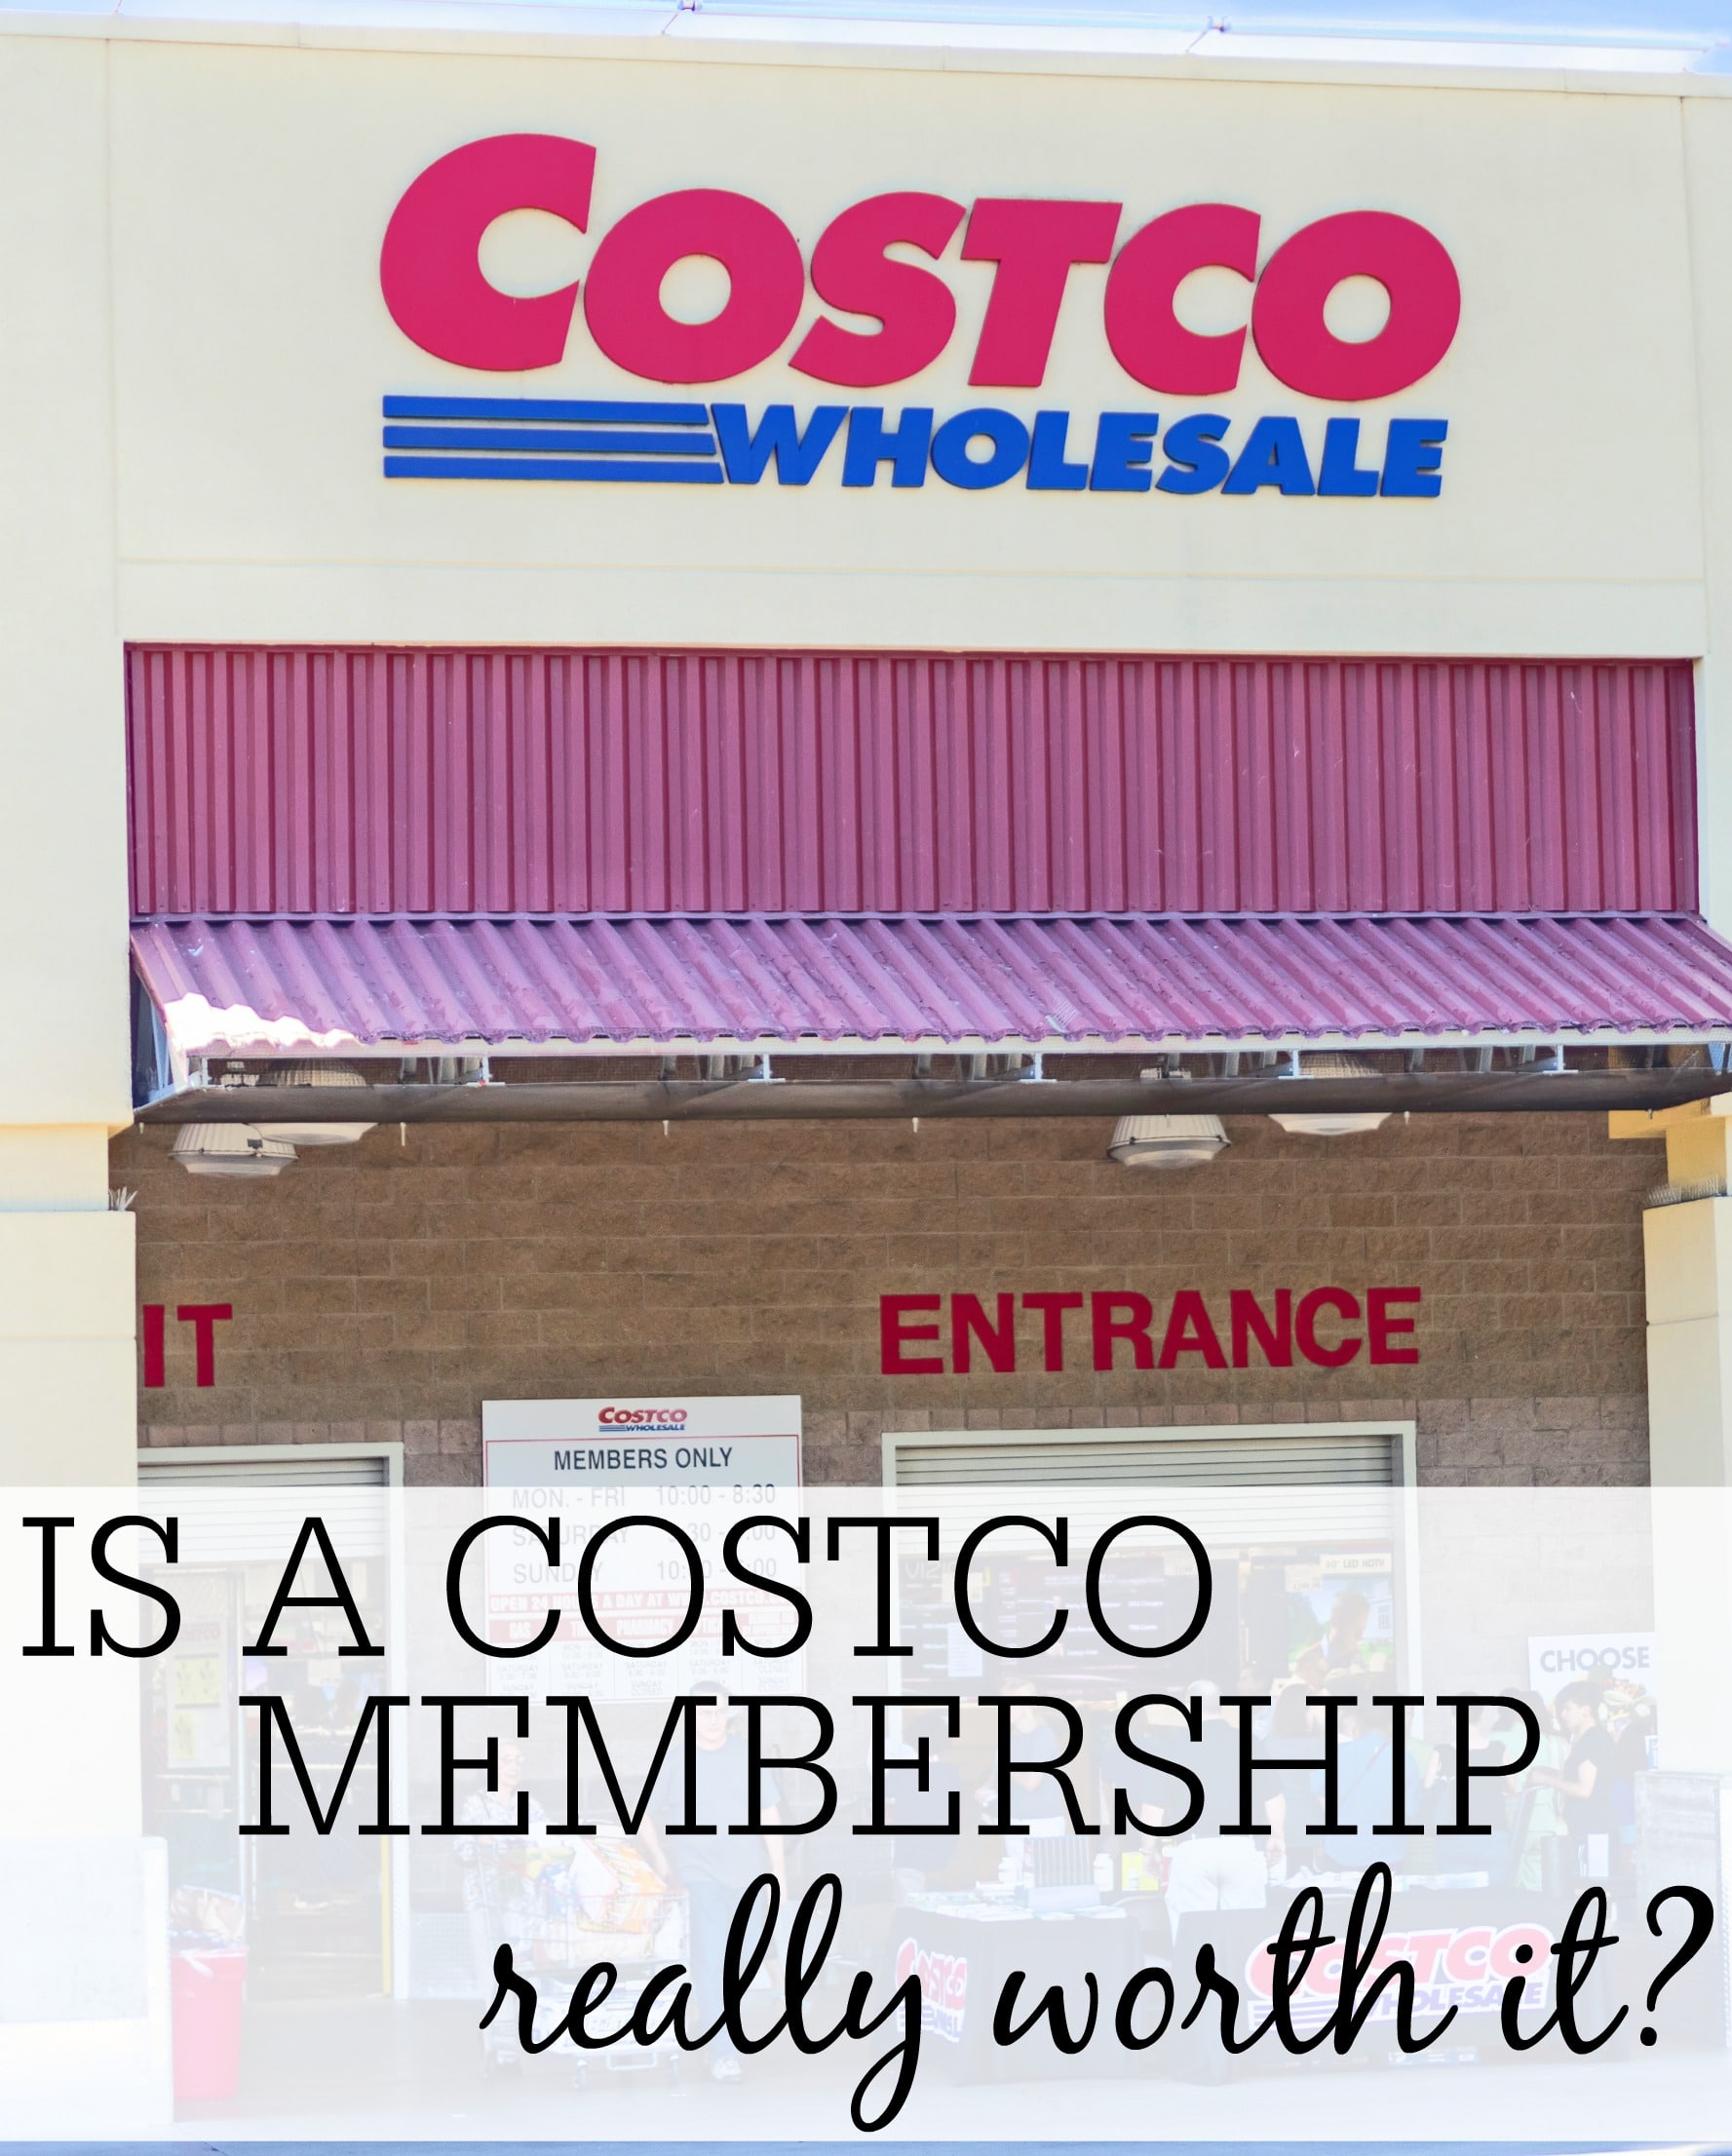 Is A Costco Membership Really Worth It?